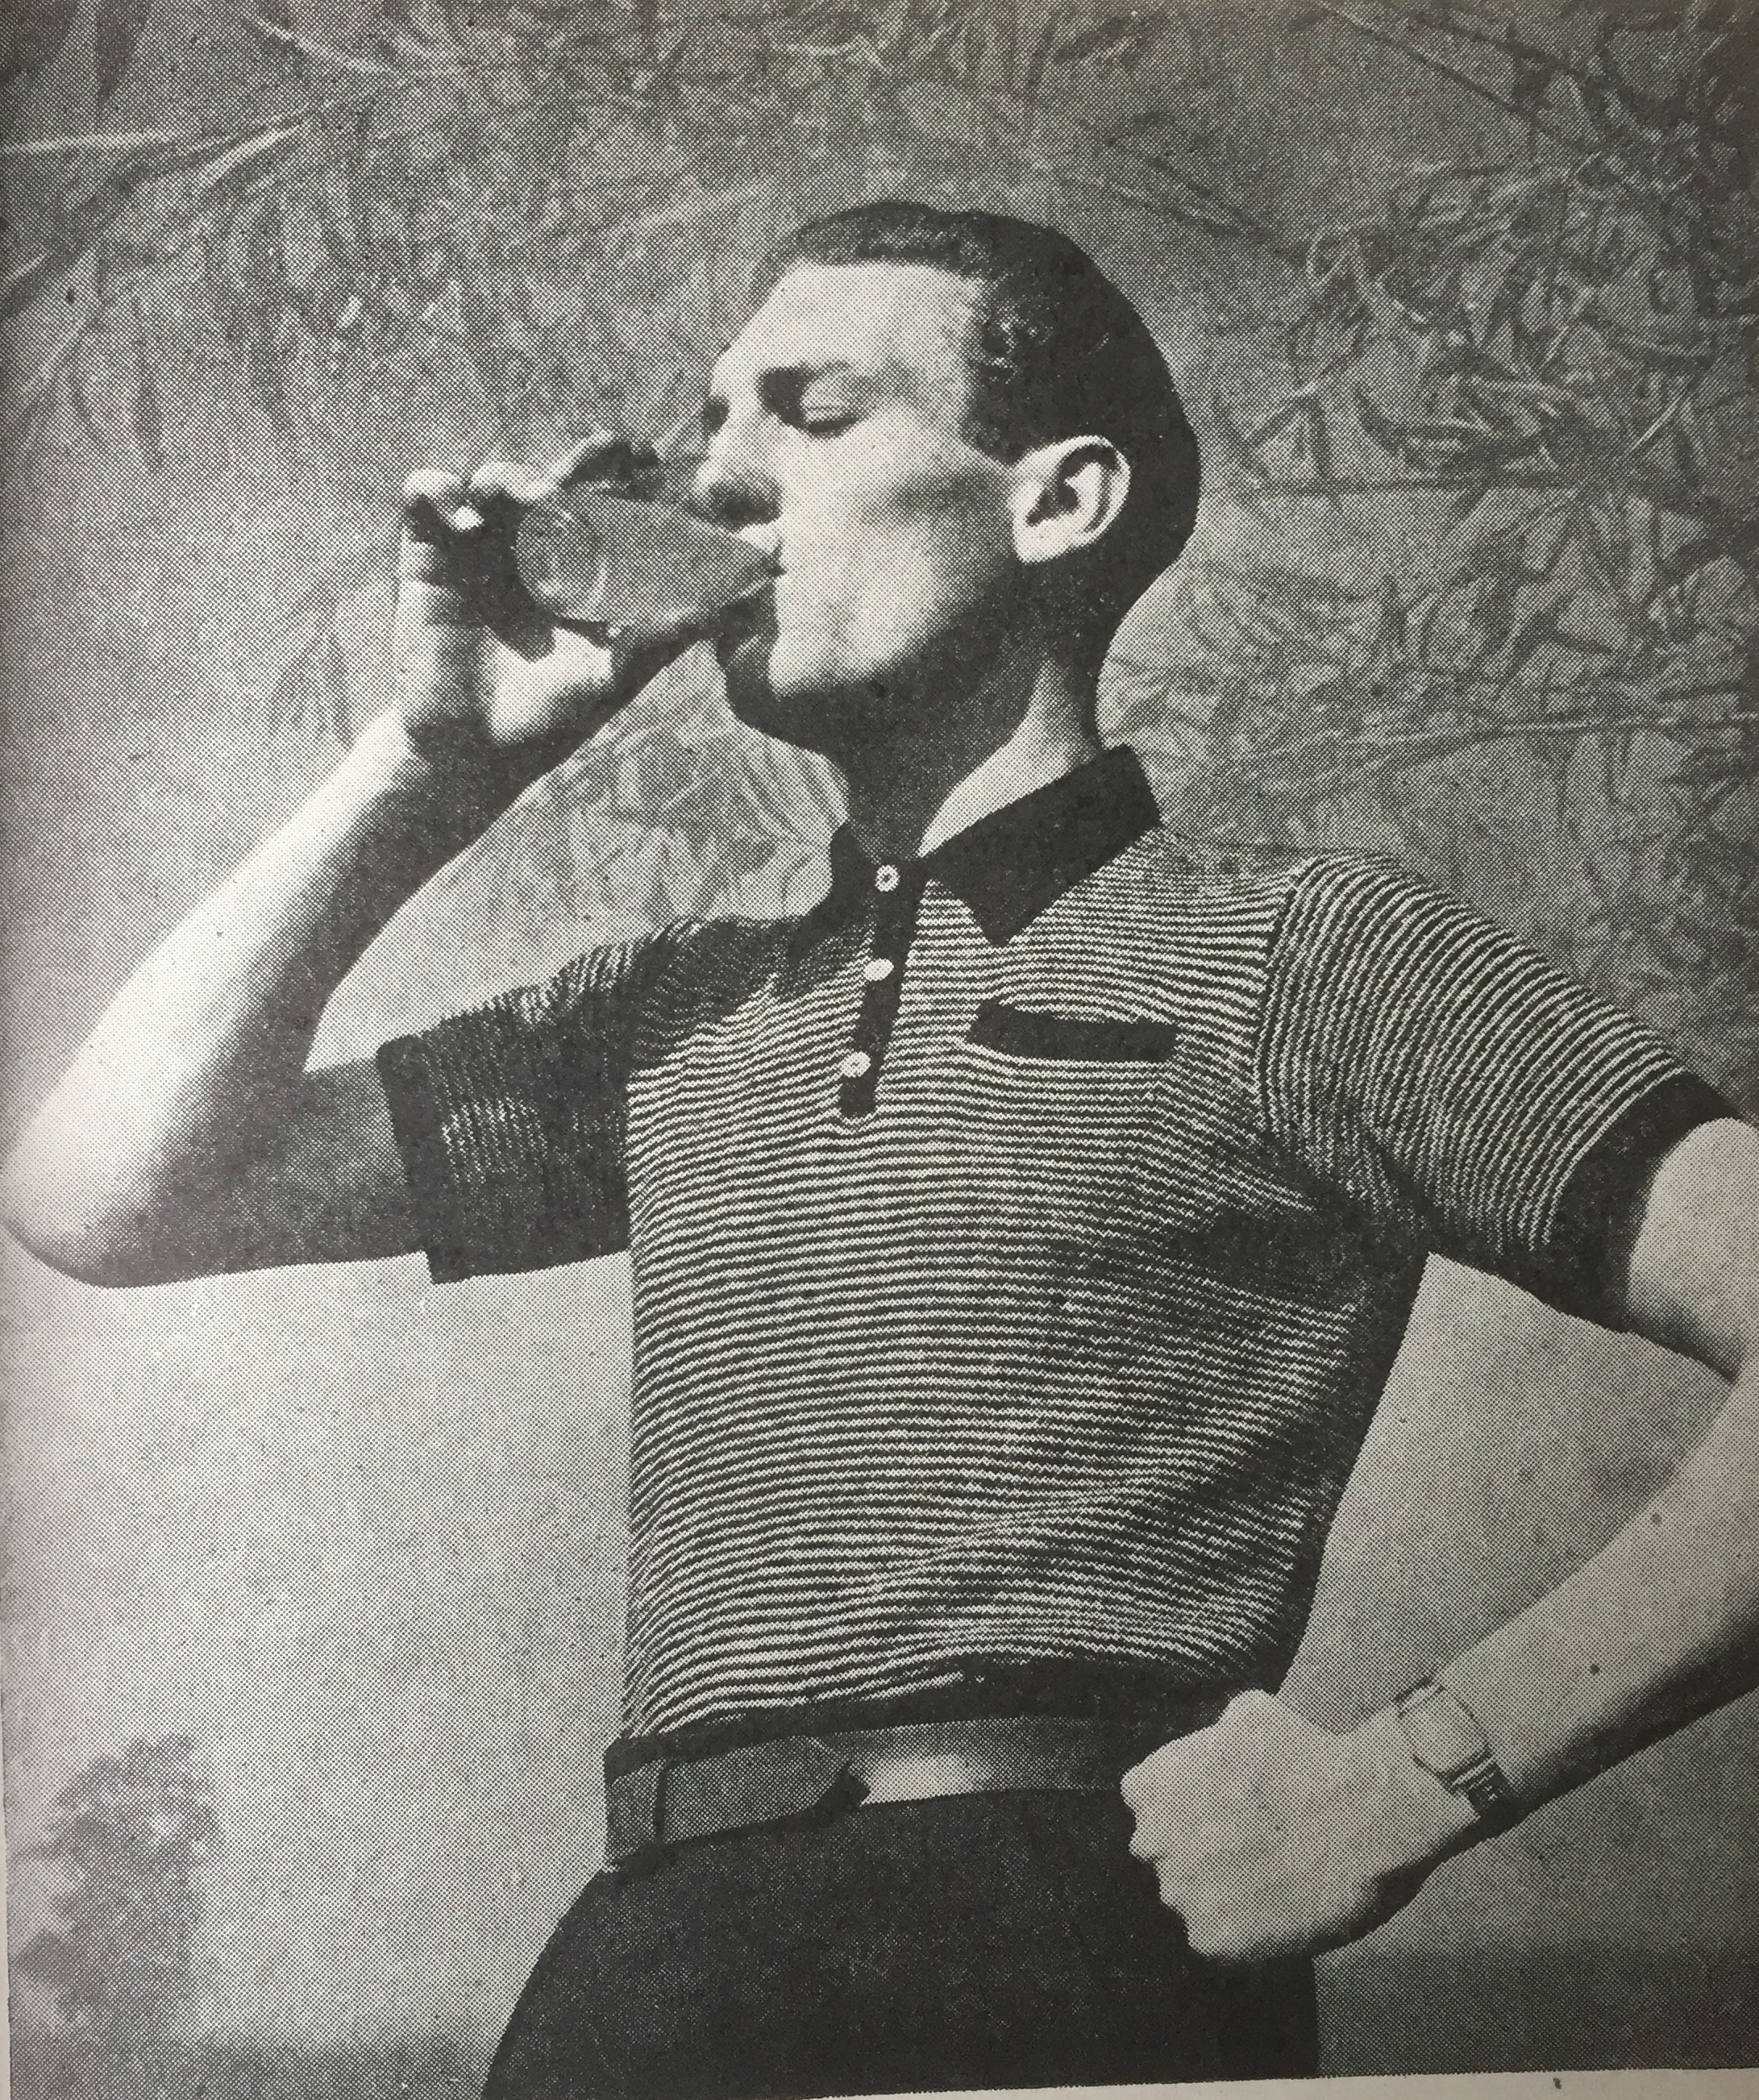 Vintage photo of male sweater model drinking a glass of squash